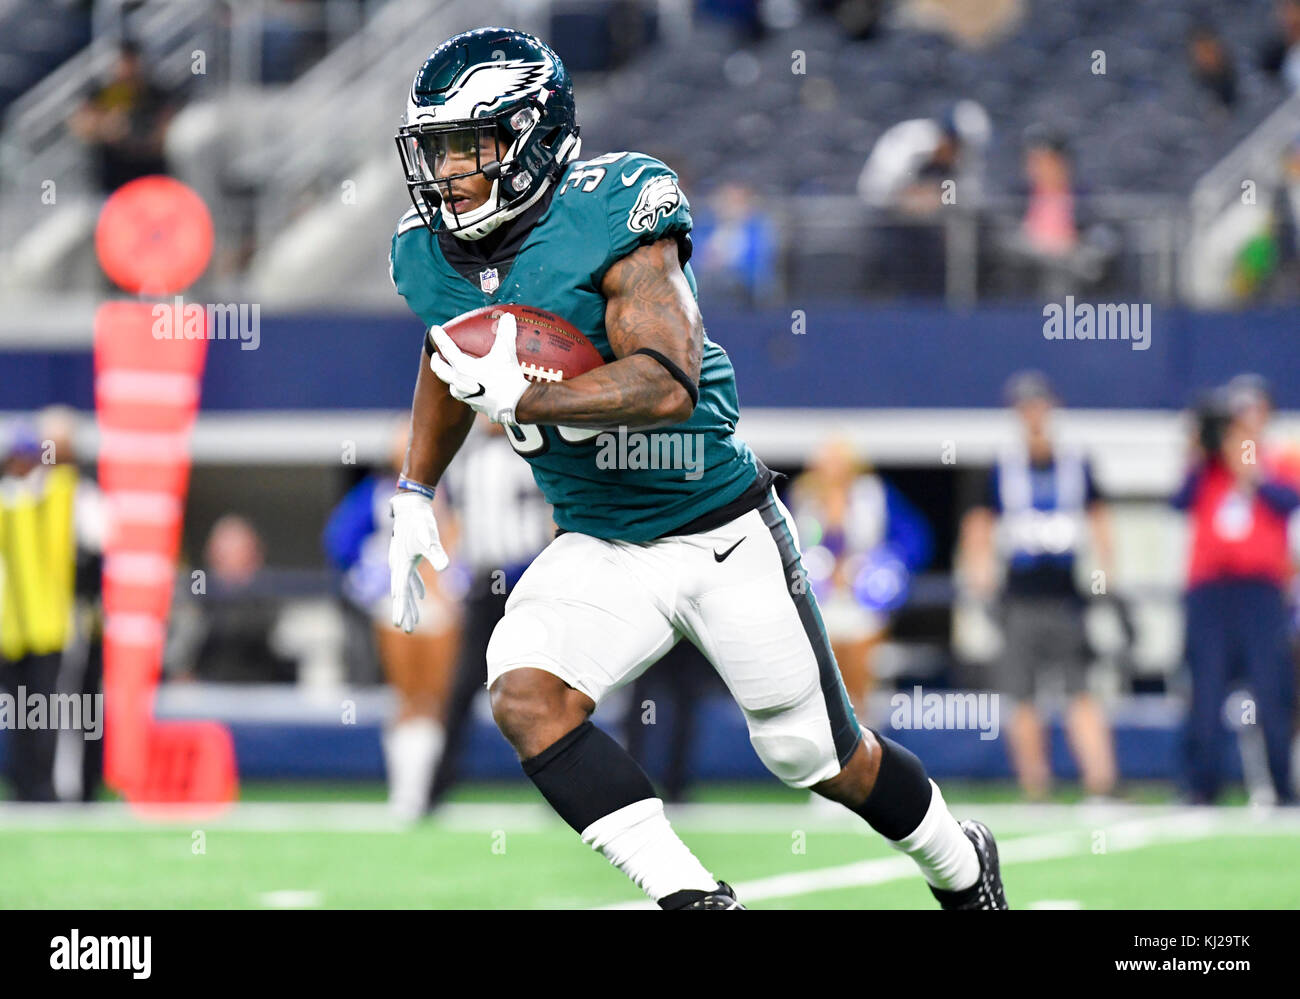 November 19, 2017: Philadelphia Eagles running back Corey Clement #30 carries the ball during an NFL football game - Stock Image